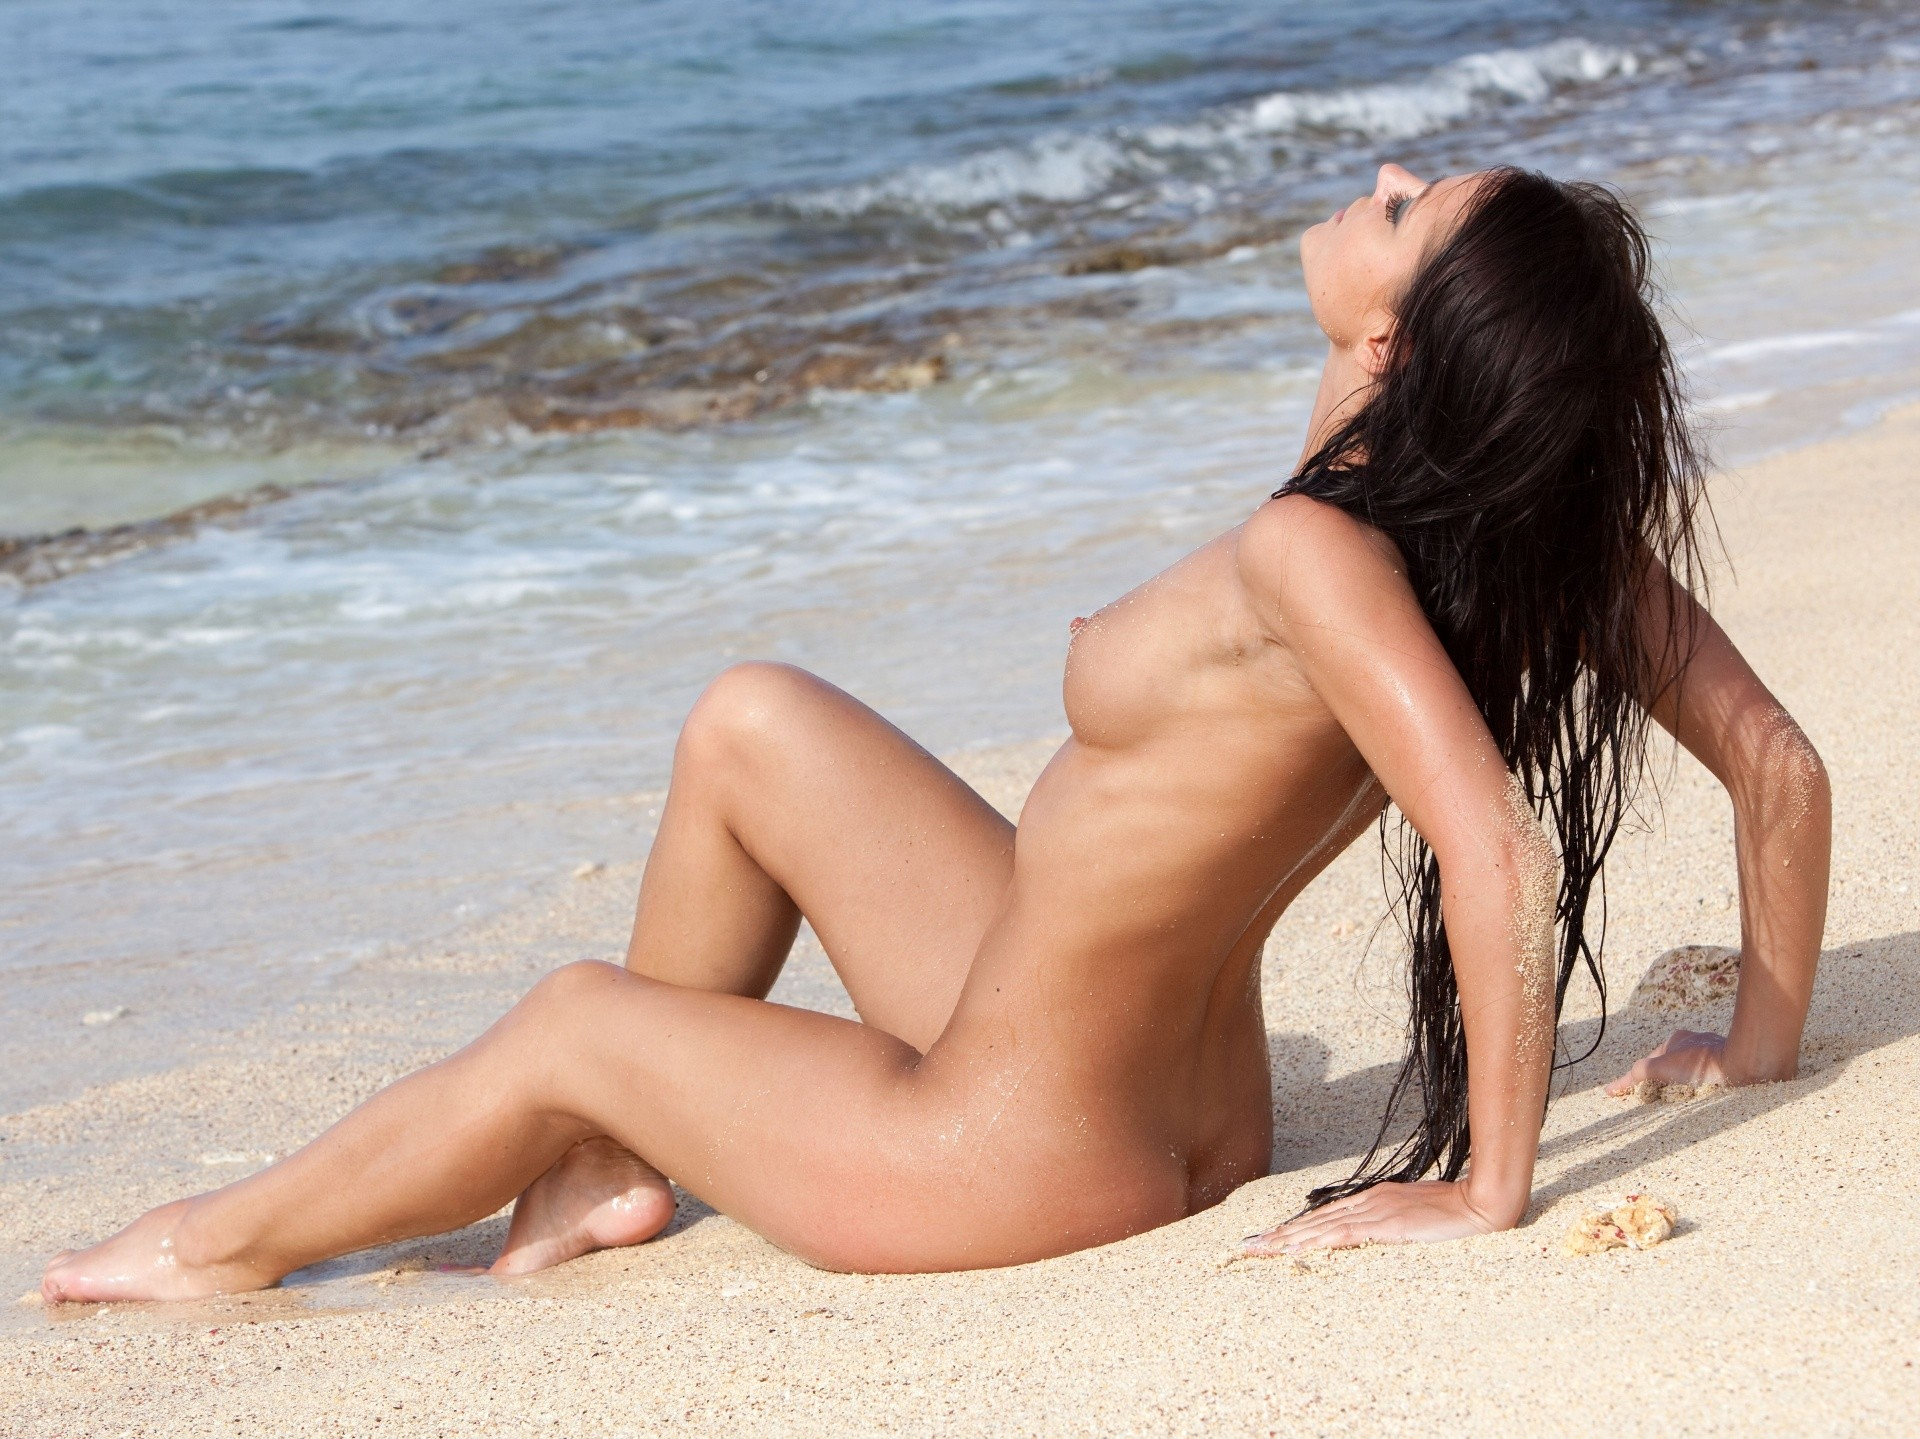 nacked-beauty-in-the-beach